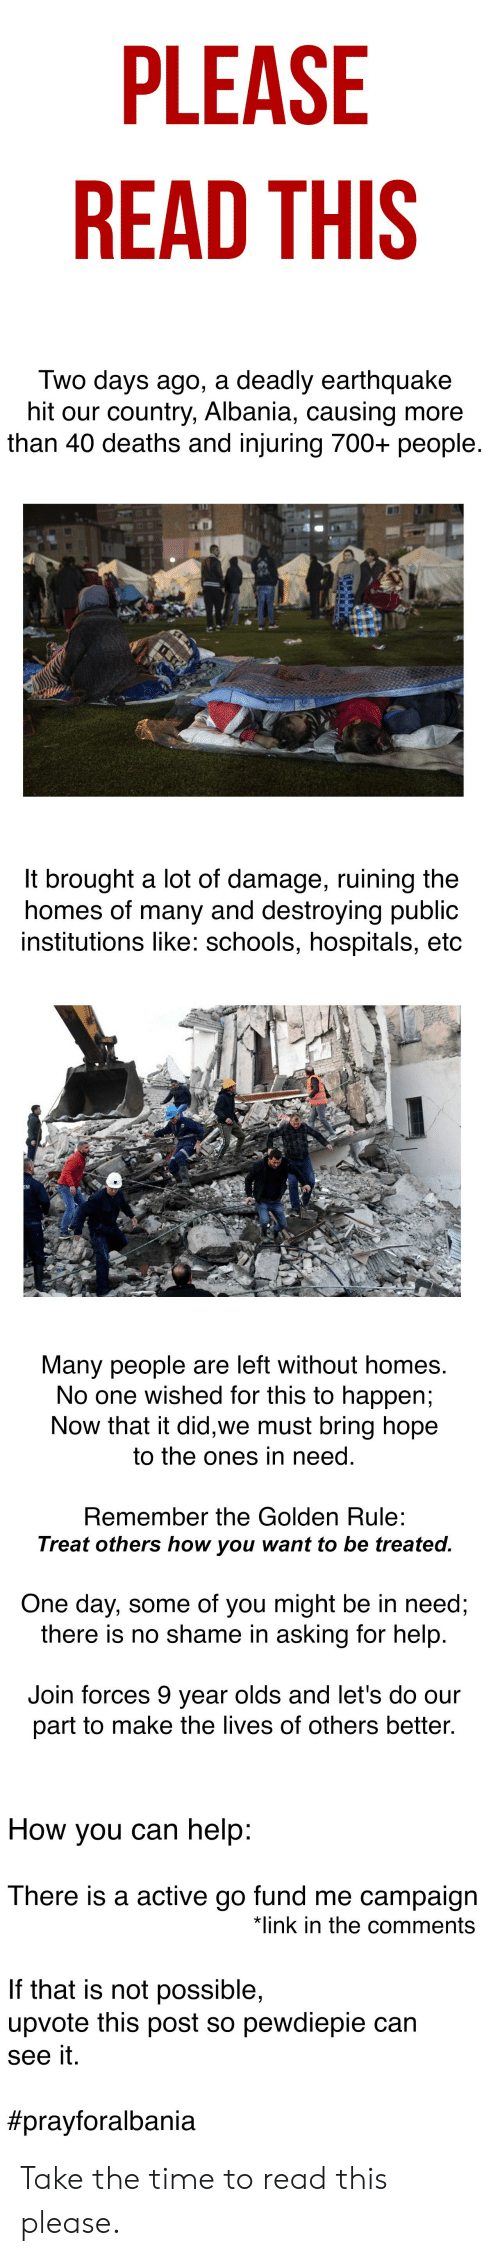 The Golden Rule: PLEASE  READ THIS  Two days ago, a deadly earthquake  hit our country, Albania, causing more  than 40 deaths and injuring 700+ people.  It brought a lot of damage, ruining the  homes of many and destroying public  institutions like: schools, hospitals, etc  EM  Many people are left without homes.  No one wished for this to happen;  Now that it did,we must bring hope  to the ones in need.  Remember the Golden Rule:  Treat others how you want to be treated.  One day, some of you might be in need;  there is no shame in asking for help.  Join forces 9 year olds and let's do our  part to make the lives of others better.  How you can help:  There is a active go fund me campaign  *link in the comments  If that is not possible,  upvote this post so pewdiepie can  see it.  Take the time to read this please.